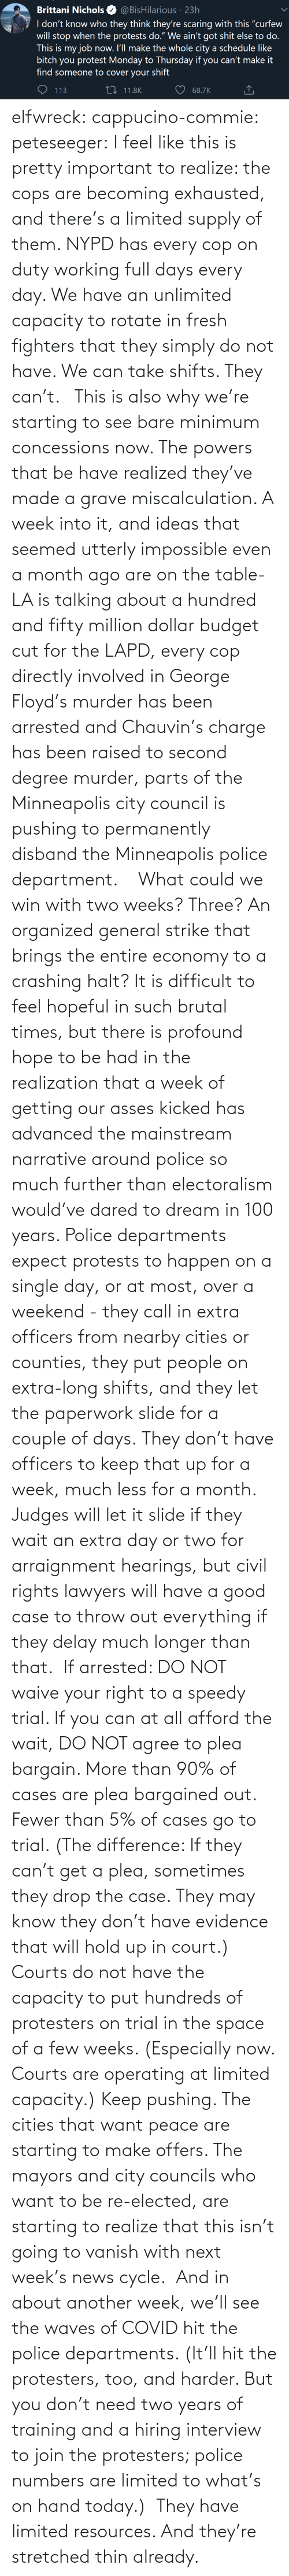 Less: elfwreck:  cappucino-commie:  peteseeger: I feel like this is pretty important to realize: the cops are becoming exhausted, and there's a limited supply of them. NYPD has every cop on duty working full days every day. We have an unlimited capacity to rotate in fresh fighters that they simply do not have. We can take shifts. They can't.    This is also why we're starting to see bare minimum concessions now. The powers that be have realized they've made a grave miscalculation. A week into it, and ideas that seemed utterly impossible even a month ago are on the table- LA is talking about a hundred and fifty million dollar budget cut for the LAPD, every cop directly involved in George Floyd's murder has been arrested and Chauvin's charge has been raised to second degree murder, parts of the Minneapolis city council is pushing to permanently disband the Minneapolis police department.    What could we win with two weeks? Three? An organized general strike that brings the entire economy to a crashing halt? It is difficult to feel hopeful in such brutal times, but there is profound hope to be had in the realization that a week of getting our asses kicked has advanced the mainstream narrative around police so much further than electoralism would've dared to dream in 100 years.   Police departments expect protests to happen on a single day, or at most, over a weekend - they call in extra officers from nearby cities or counties, they put people on extra-long shifts, and they let the paperwork slide for a couple of days. They don't have officers to keep that up for a week, much less for a month. Judges will let it slide if they wait an extra day or two for arraignment hearings, but civil rights lawyers will have a good case to throw out everything if they delay much longer than that.  If arrested: DO NOT waive your right to a speedy trial. If you can at all afford the wait, DO NOT agree to plea bargain. More than 90% of cases are plea bargained out. Fewer than 5% of cases go to trial. (The difference: If they can't get a plea, sometimes they drop the case. They may know they don't have evidence that will hold up in court.) Courts do not have the capacity to put hundreds of protesters on trial in the space of a few weeks. (Especially now. Courts are operating at limited capacity.) Keep pushing. The cities that want peace are starting to make offers. The mayors and city councils who want to be re-elected, are starting to realize that this isn't going to vanish with next week's news cycle.  And in about another week, we'll see the waves of COVID hit the police departments. (It'll hit the protesters, too, and harder. But you don't need two years of training and a hiring interview to join the protesters; police numbers are limited to what's on hand today.)  They have limited resources. And they're stretched thin already.